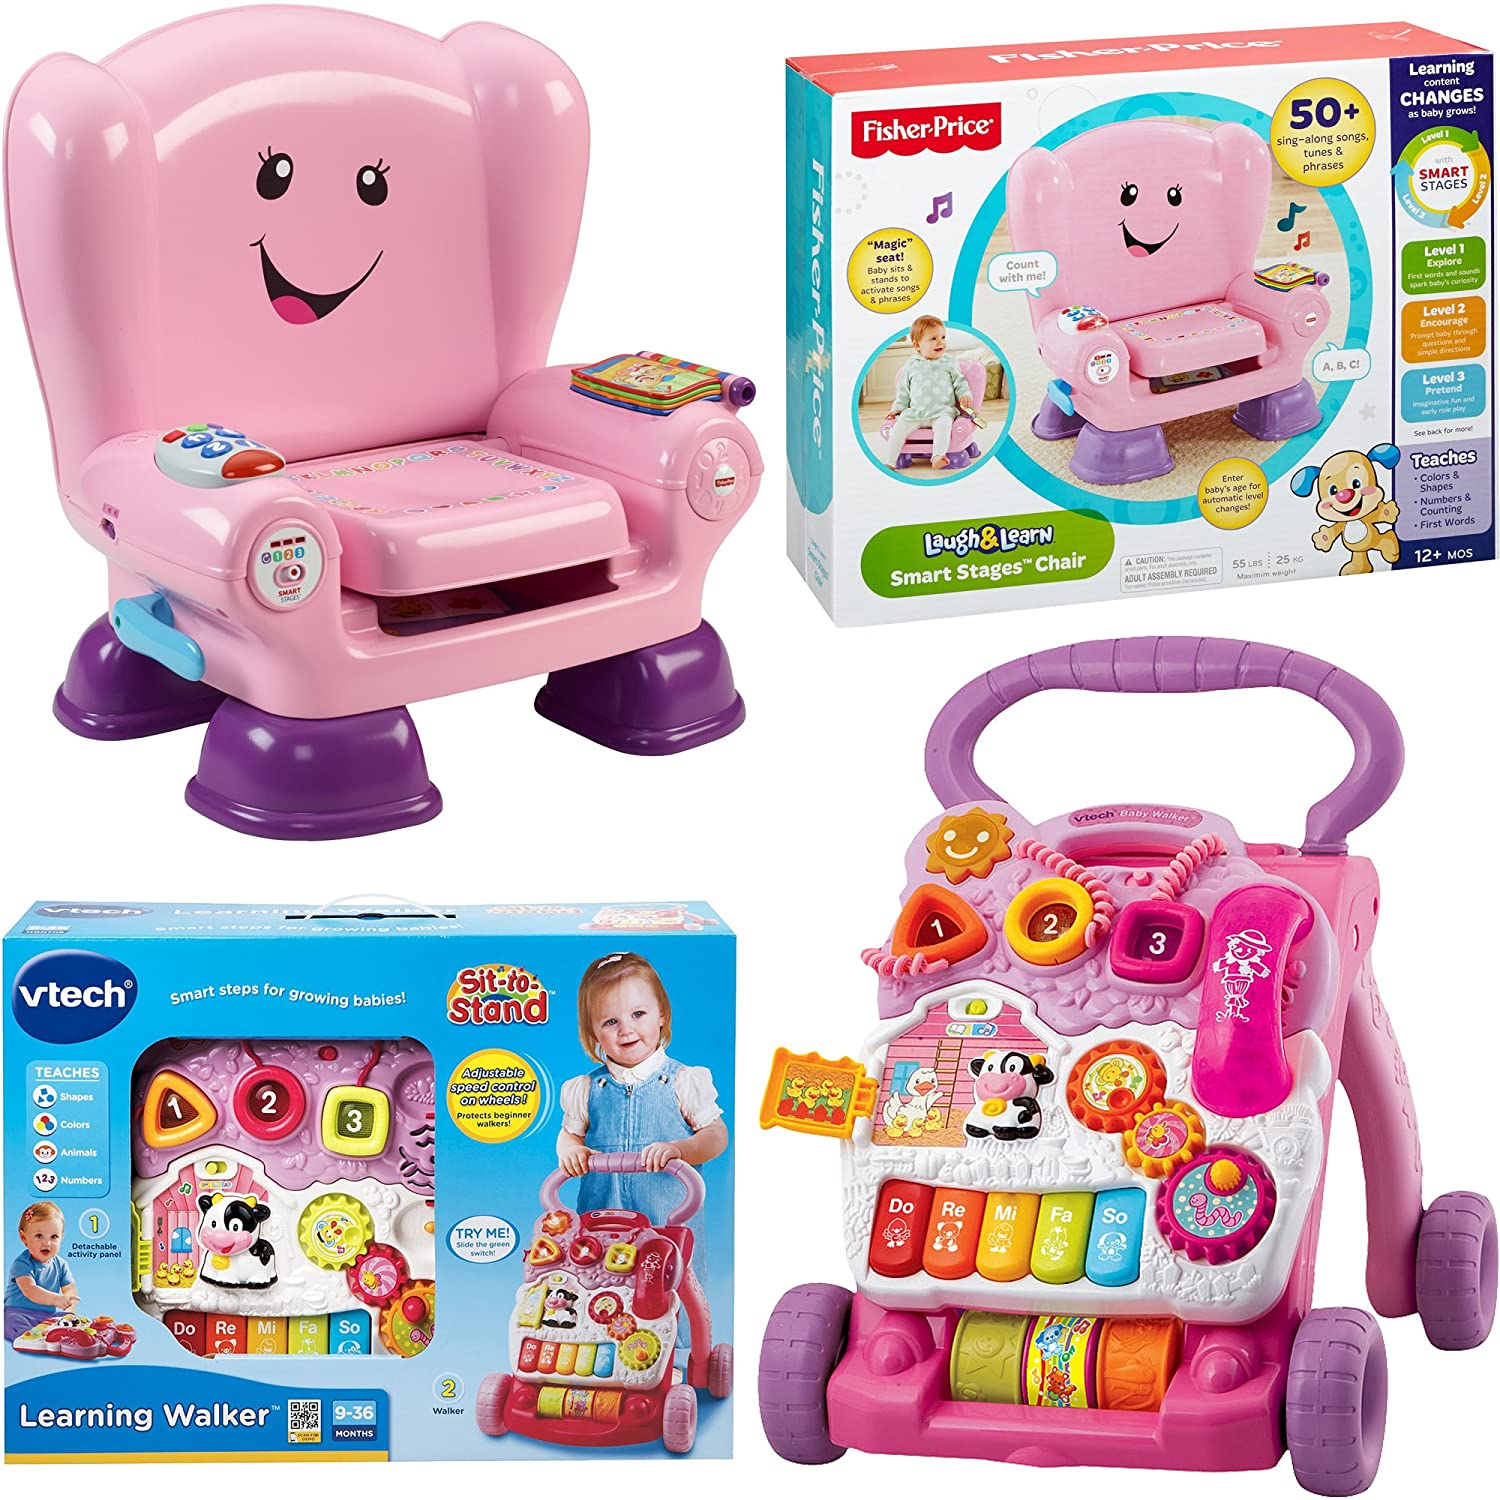 Fisher price smart stages chair - Amazon Com Vtech Sit To Stand Learning Walker And Fisher Price Laugh Learn Smart Stages Chair Kids Electronic Educational Musical Learning Toys For